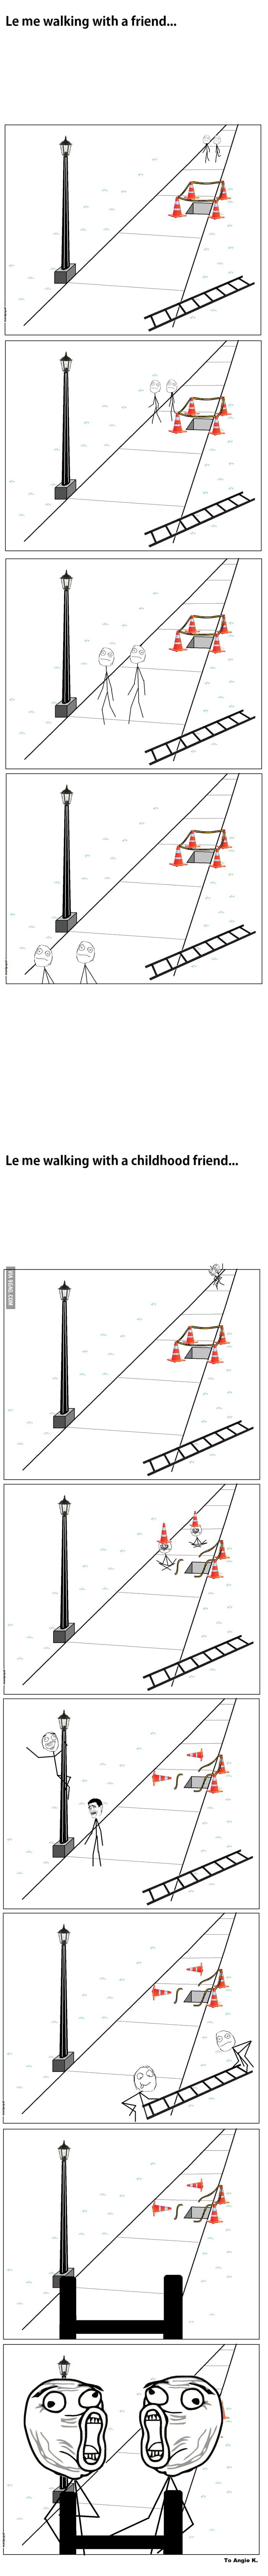 Just walking with different people